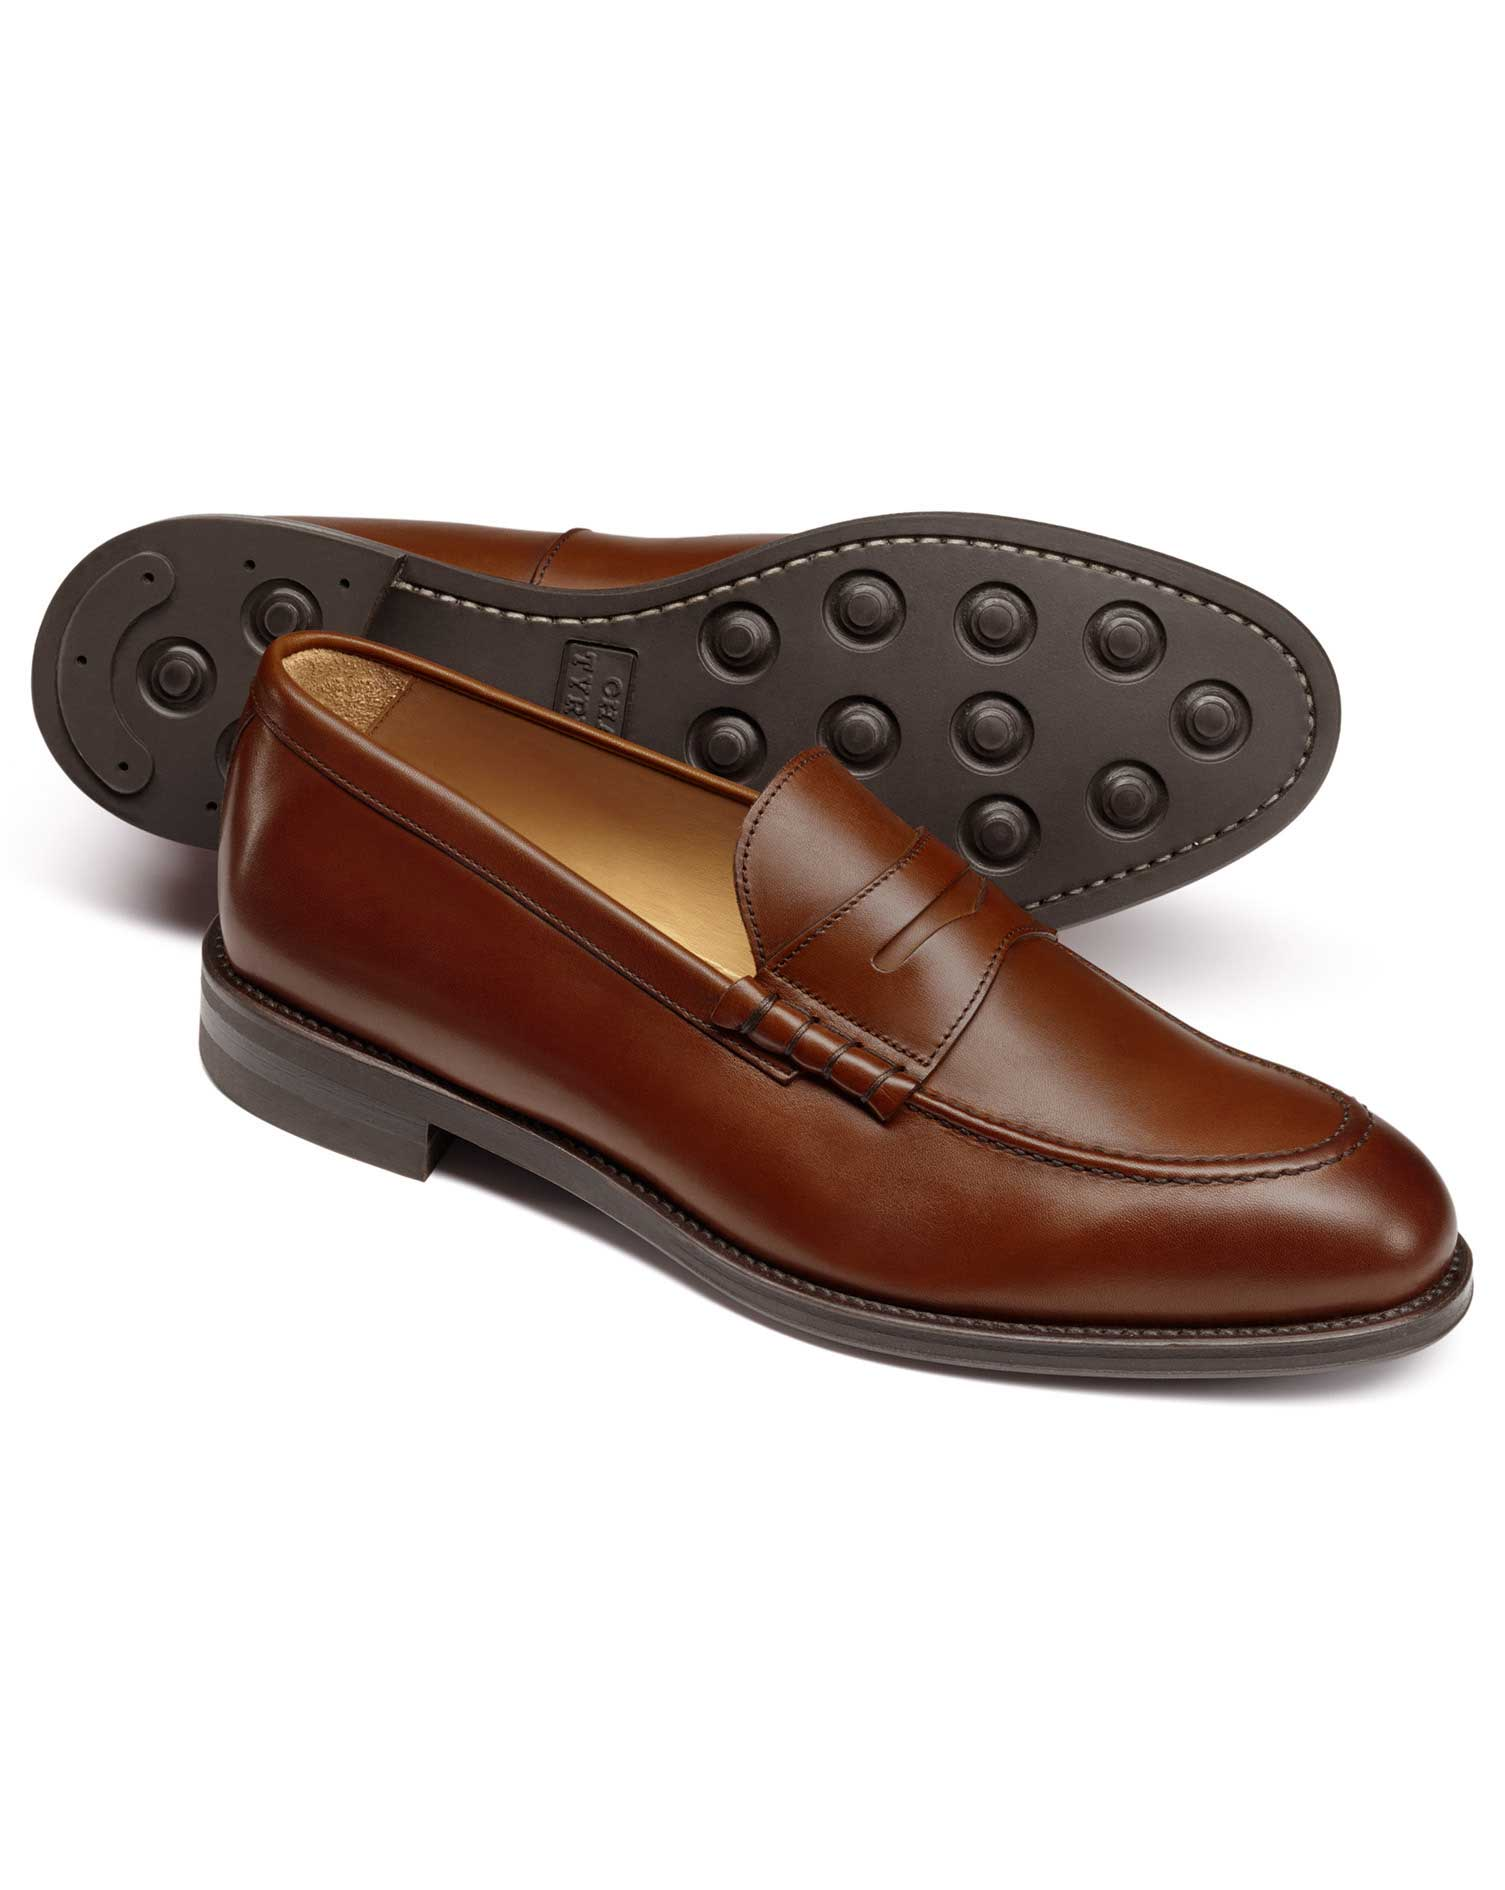 Chestnut Penny Loafers Size 9.5 R by Charles Tyrwhitt